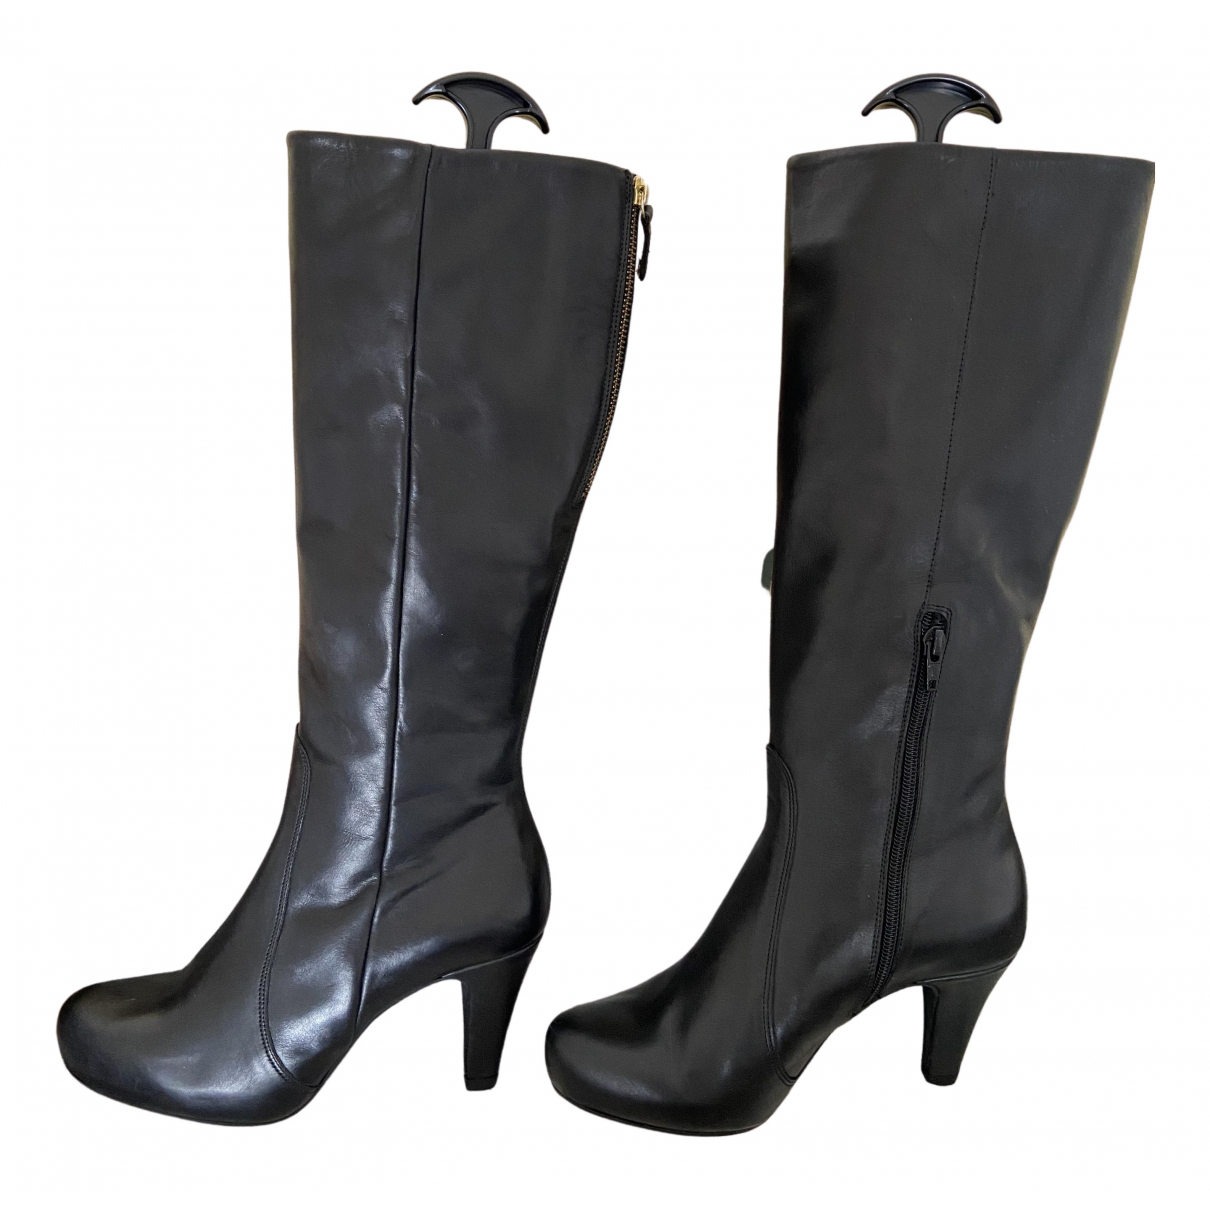 Unisa N Black Leather Boots for Women 37 EU